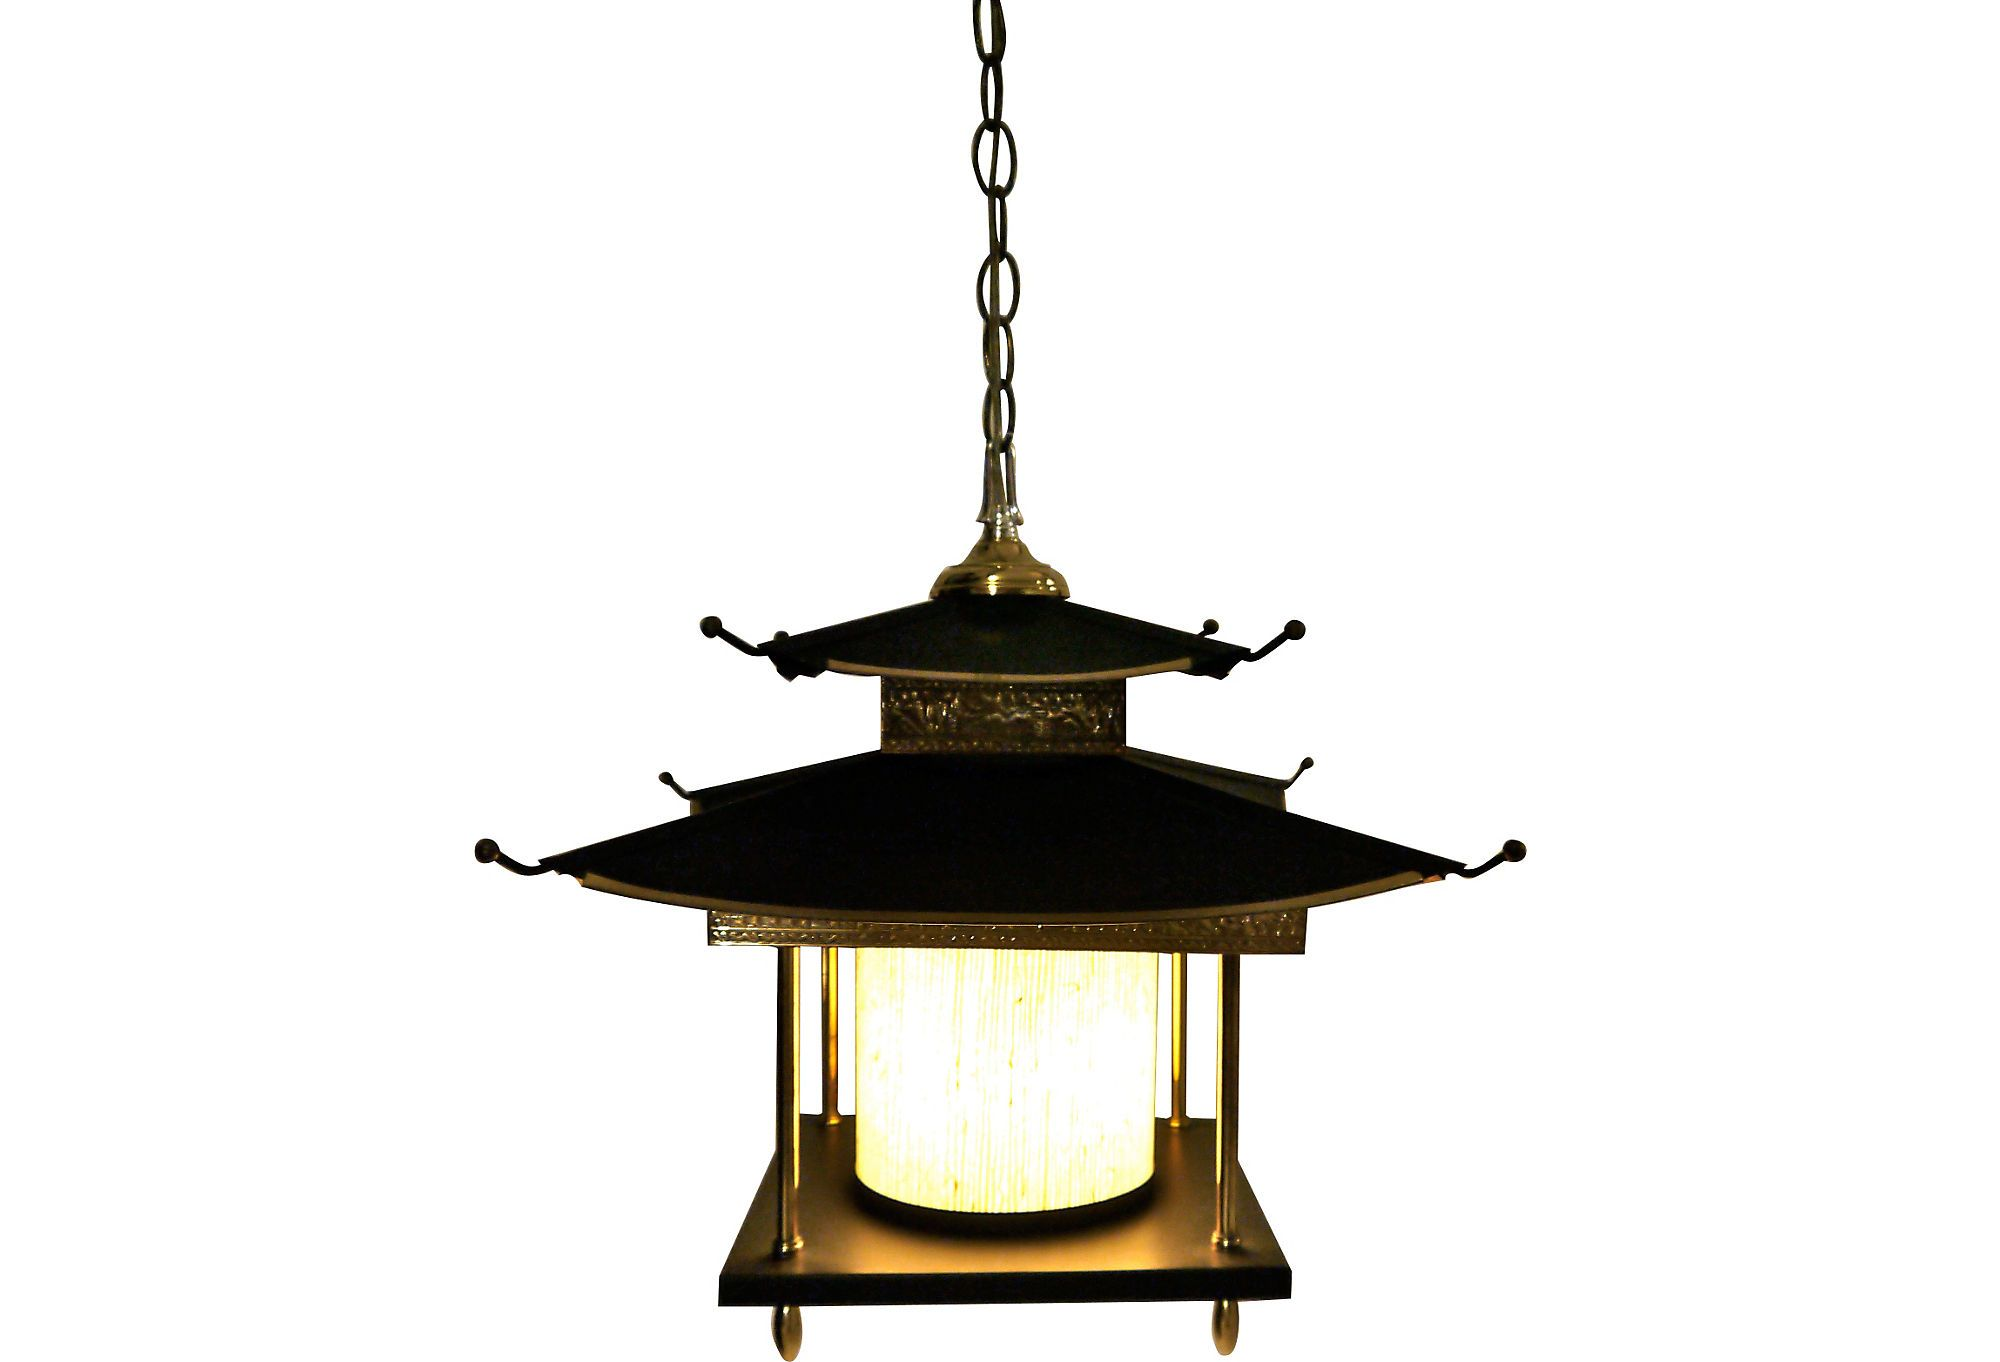 chandeliers chandelier furniture lighting pagoda has wood lights id carved f it pendant asian modern l at